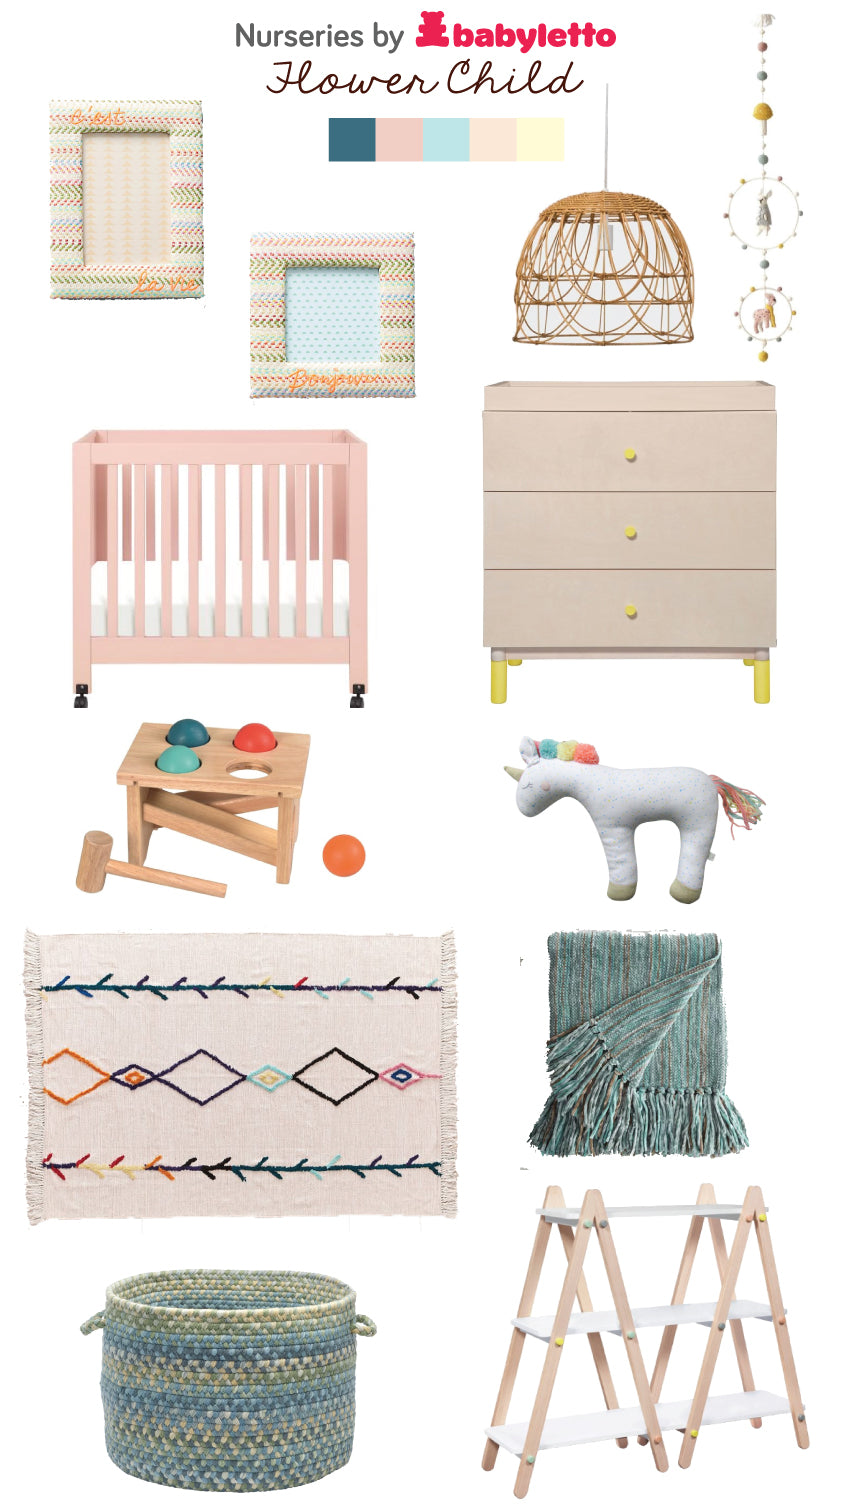 flower child nursery styleboard babyletto